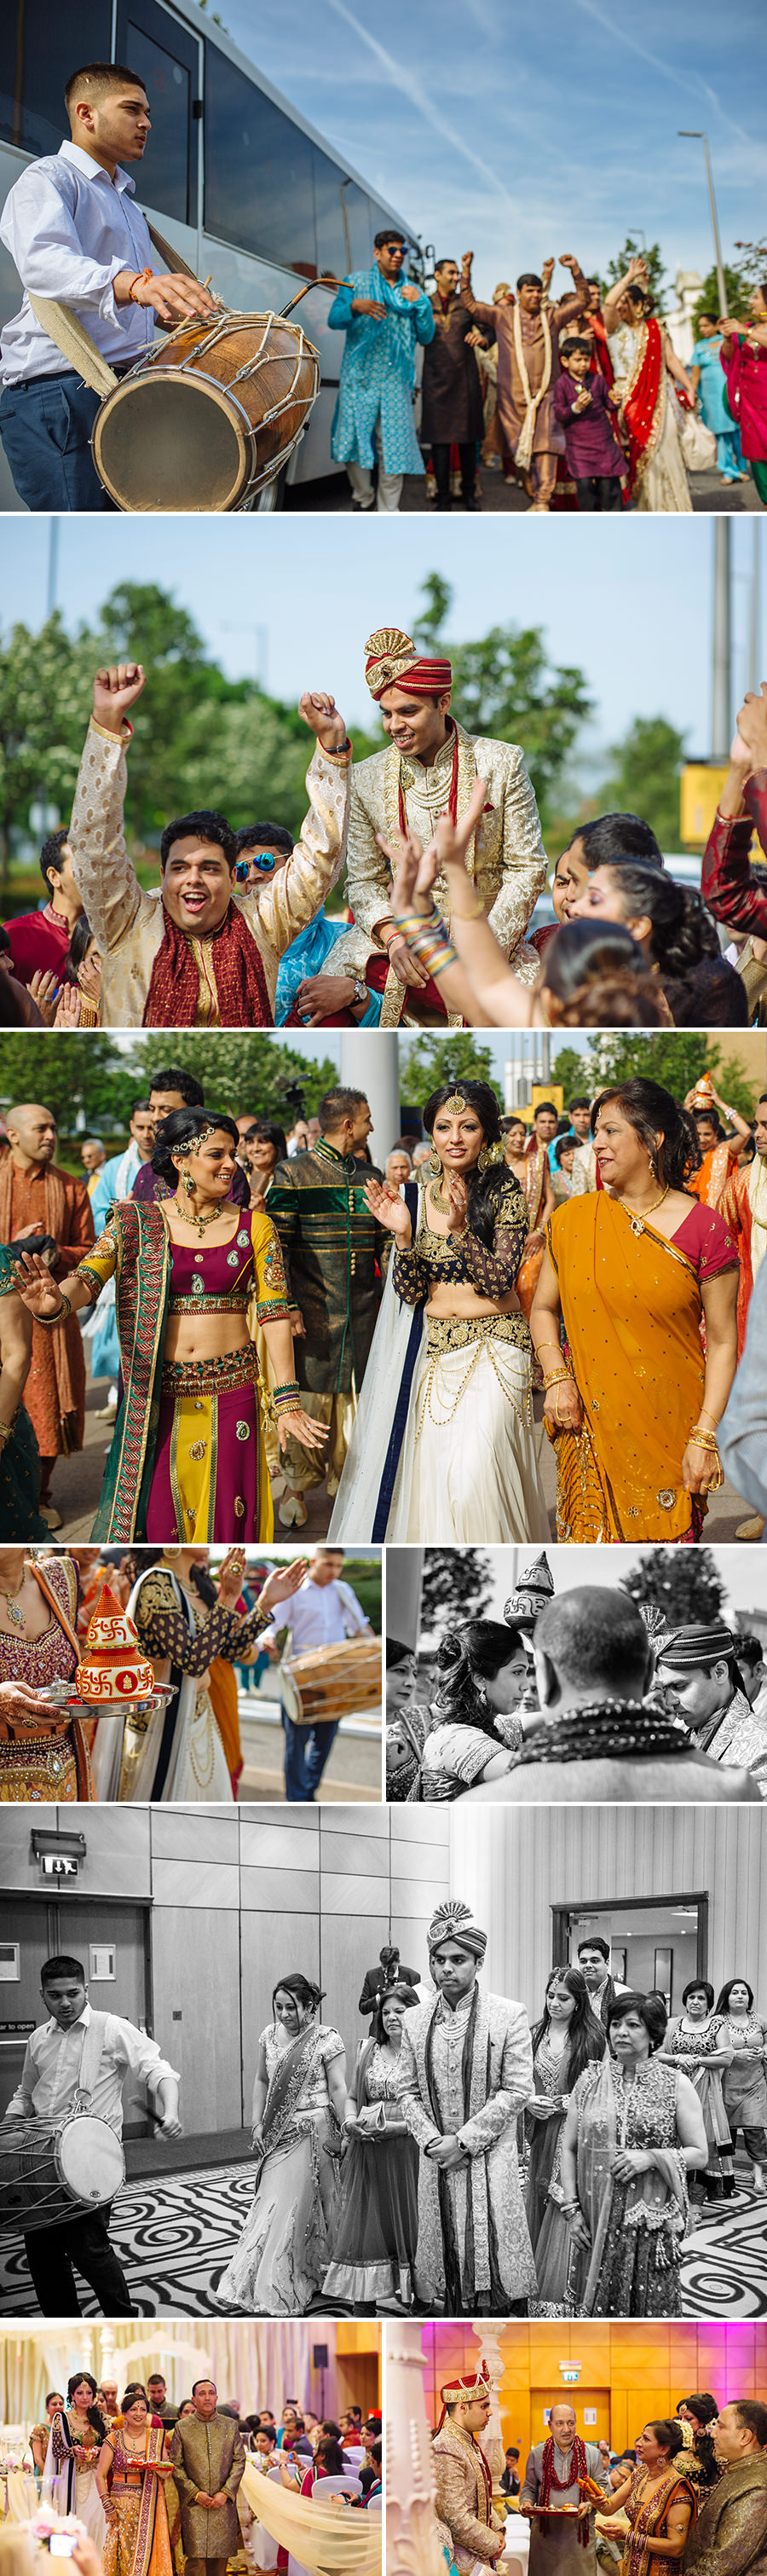 04_destination_indian_wedding_marriott wedding_top wedding photography_irish photographers_04